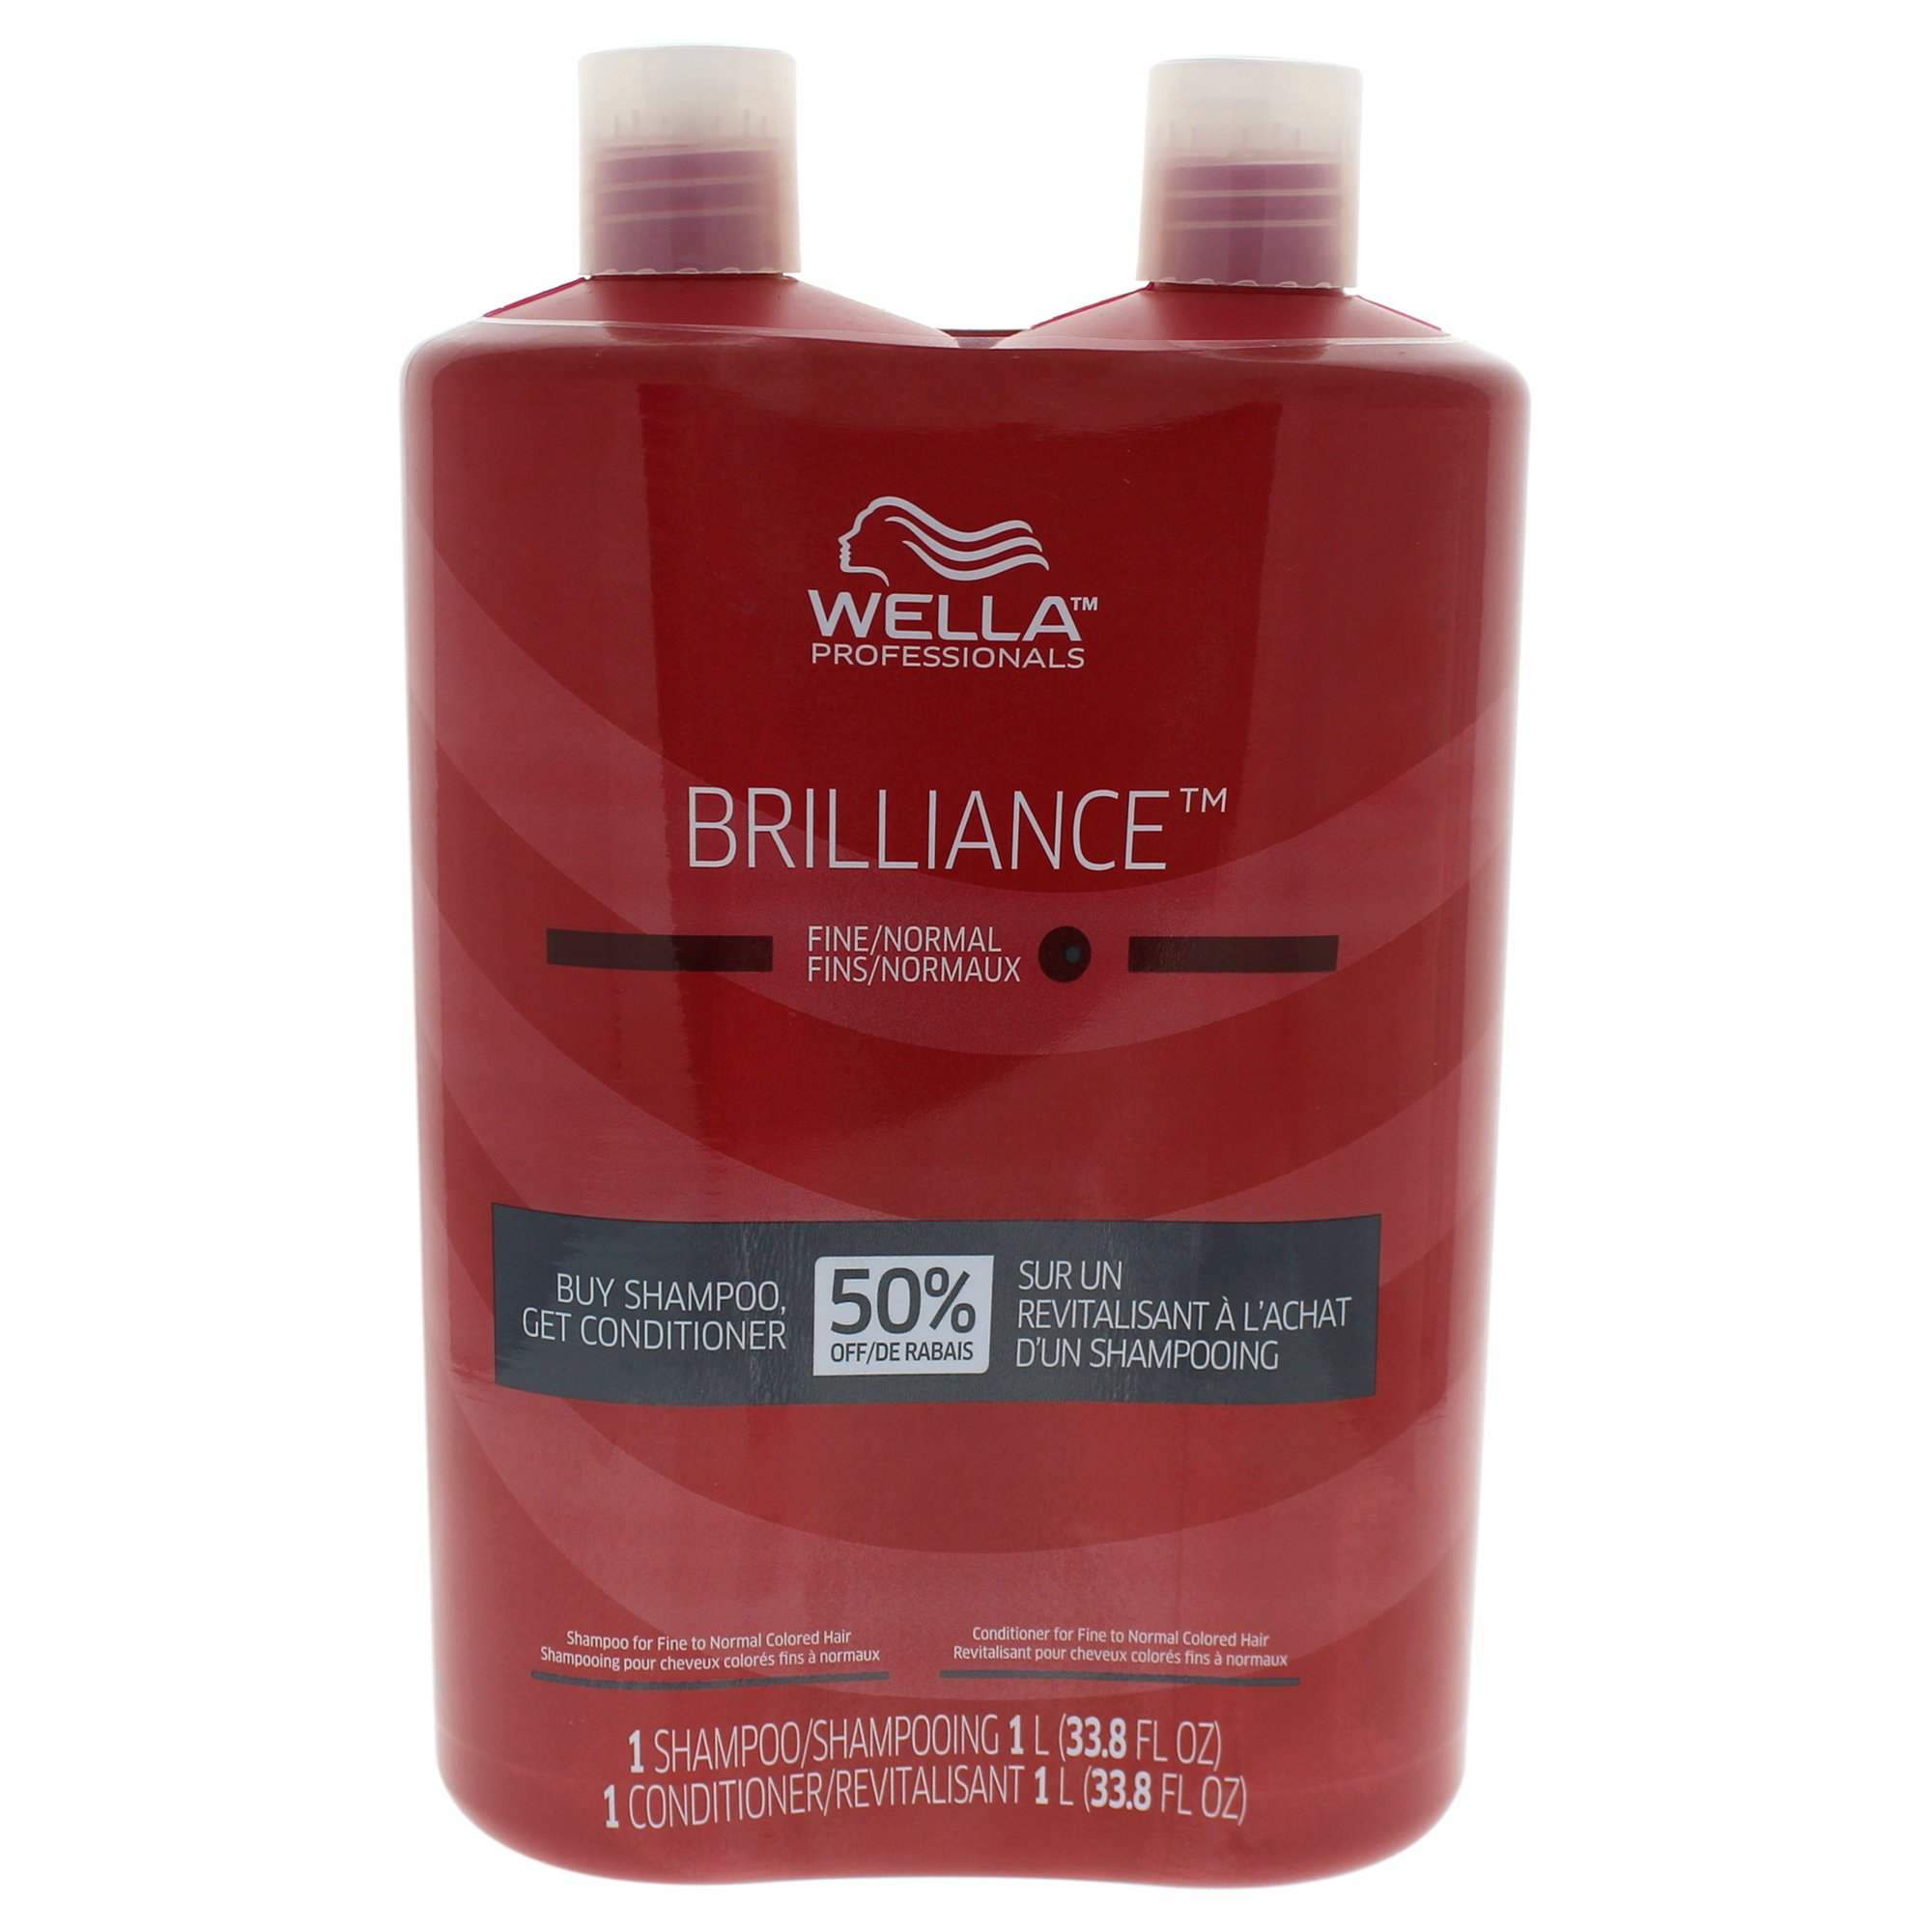 WELLA Elements Brilliance Shampoo and Conditioner Duo for Fine Hair Kit by Wella